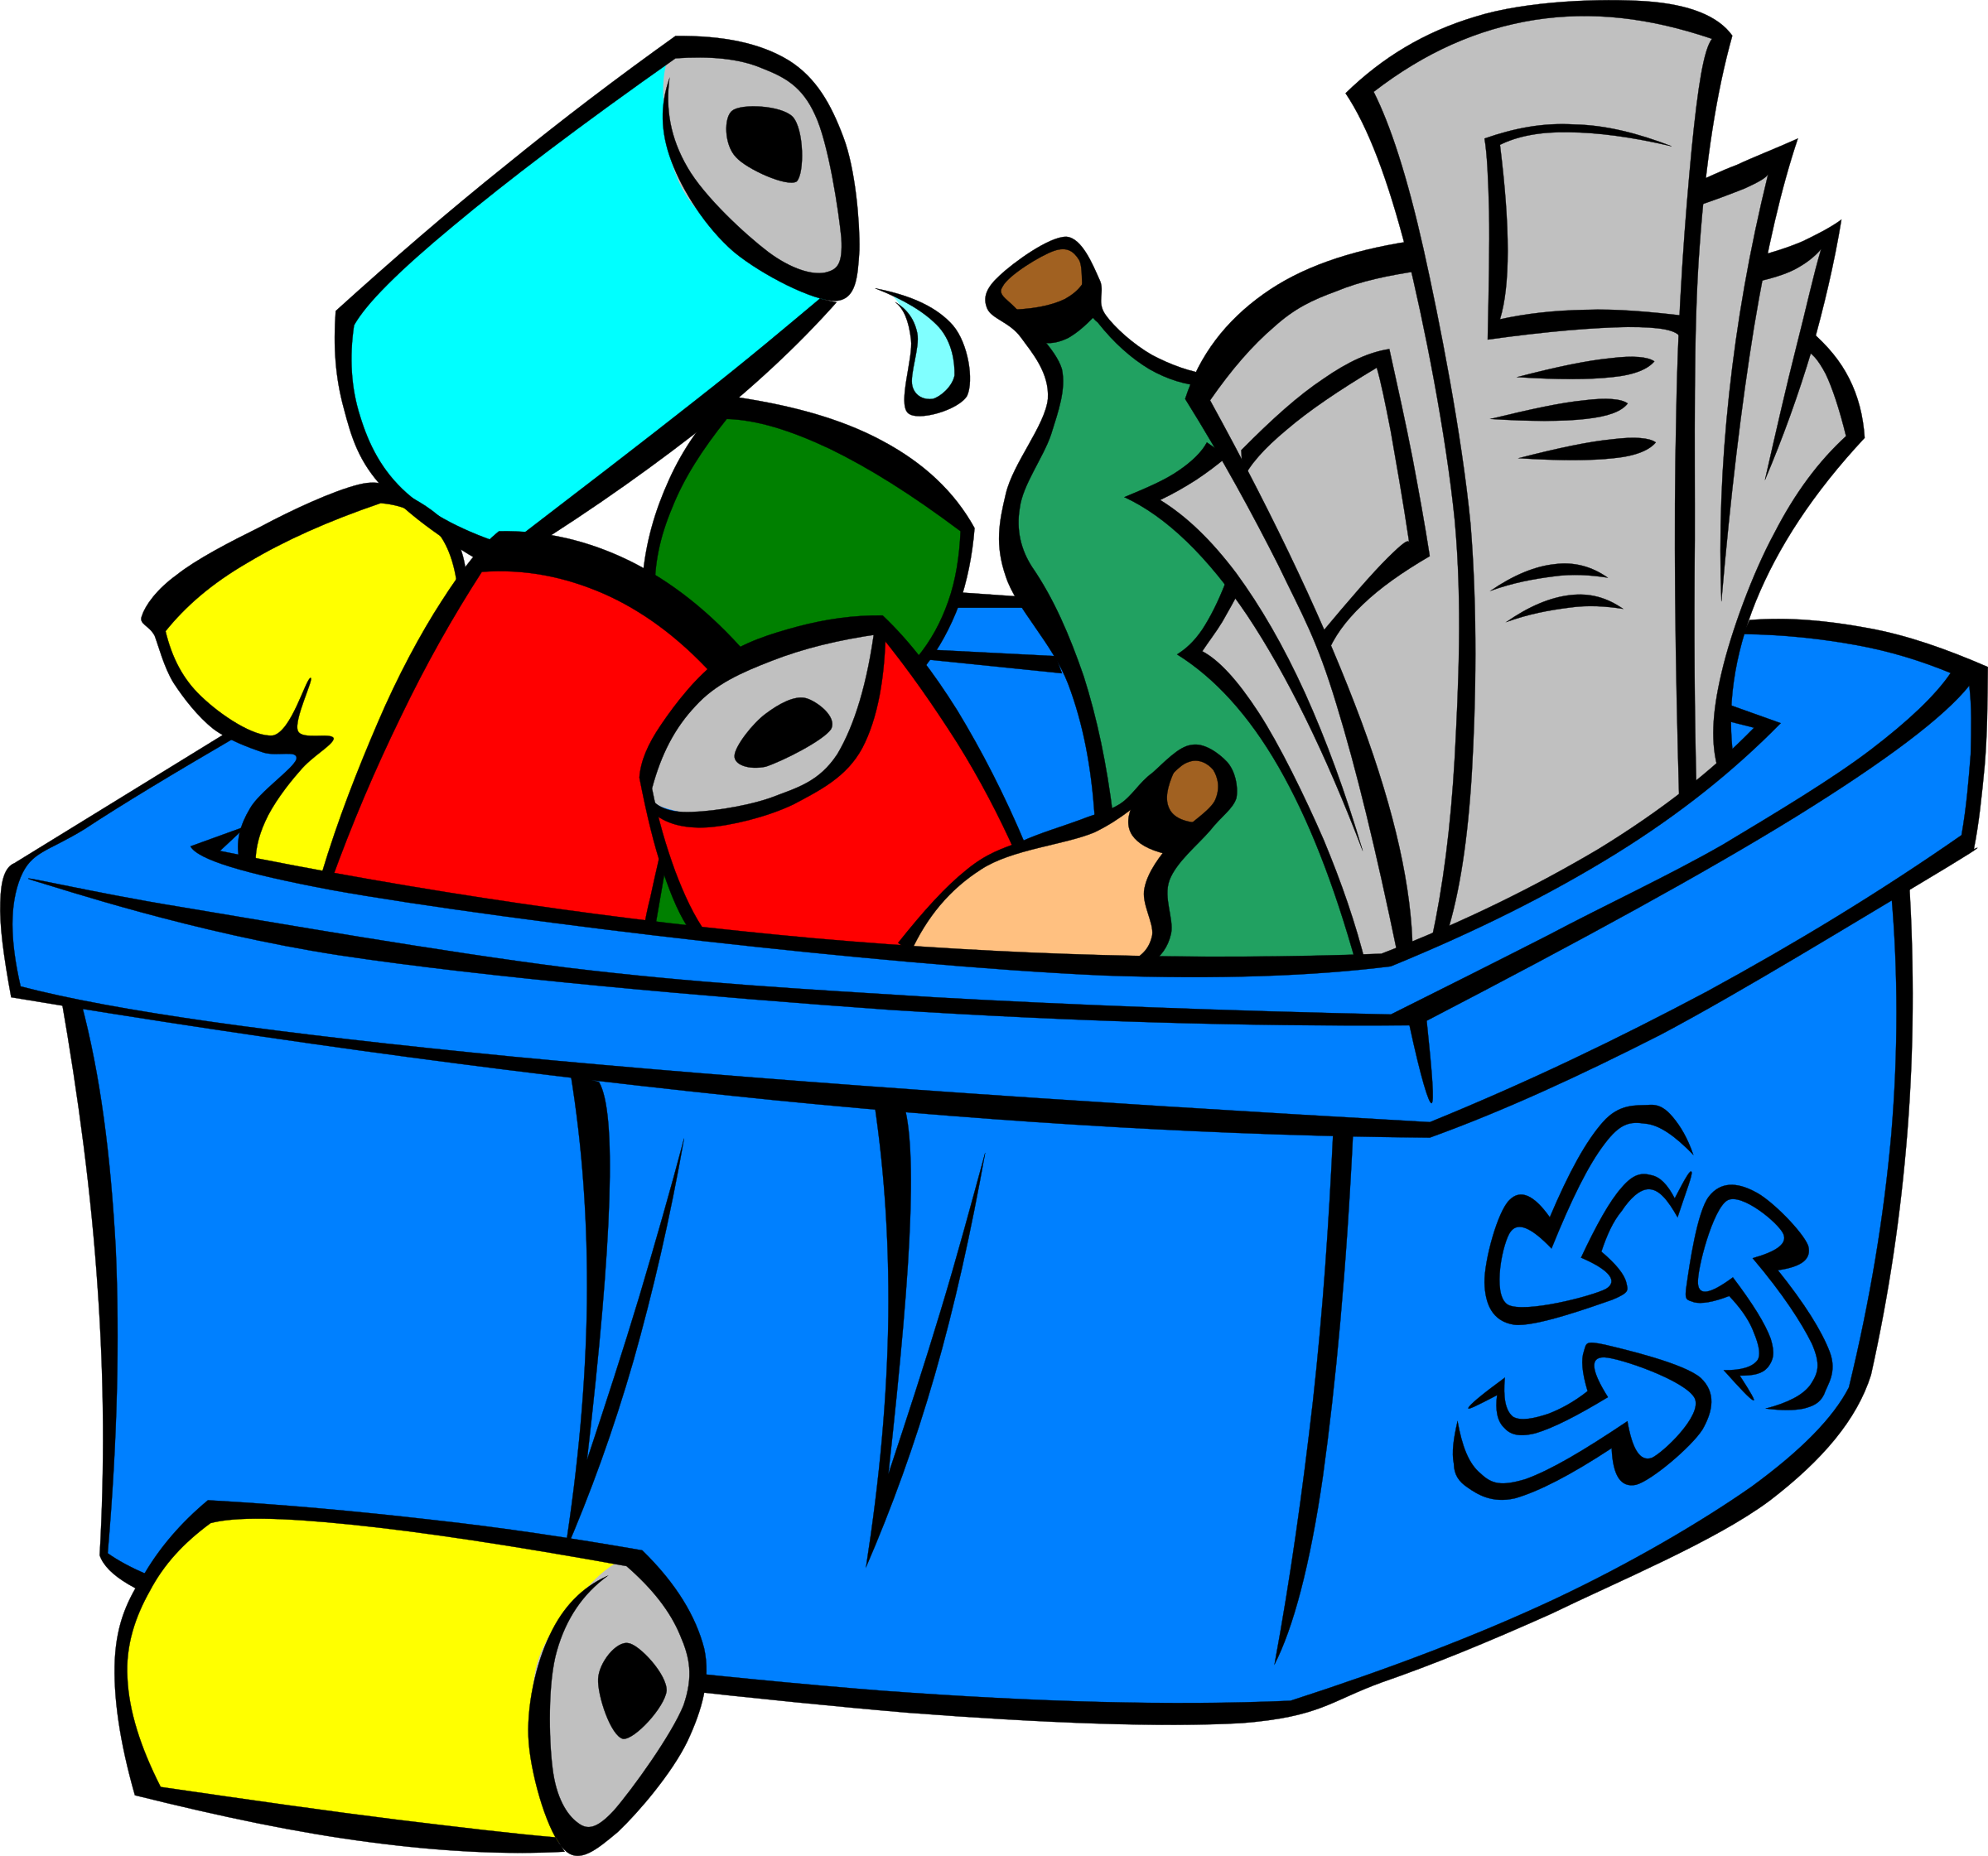 Recycle icons png free. Water clipart bin